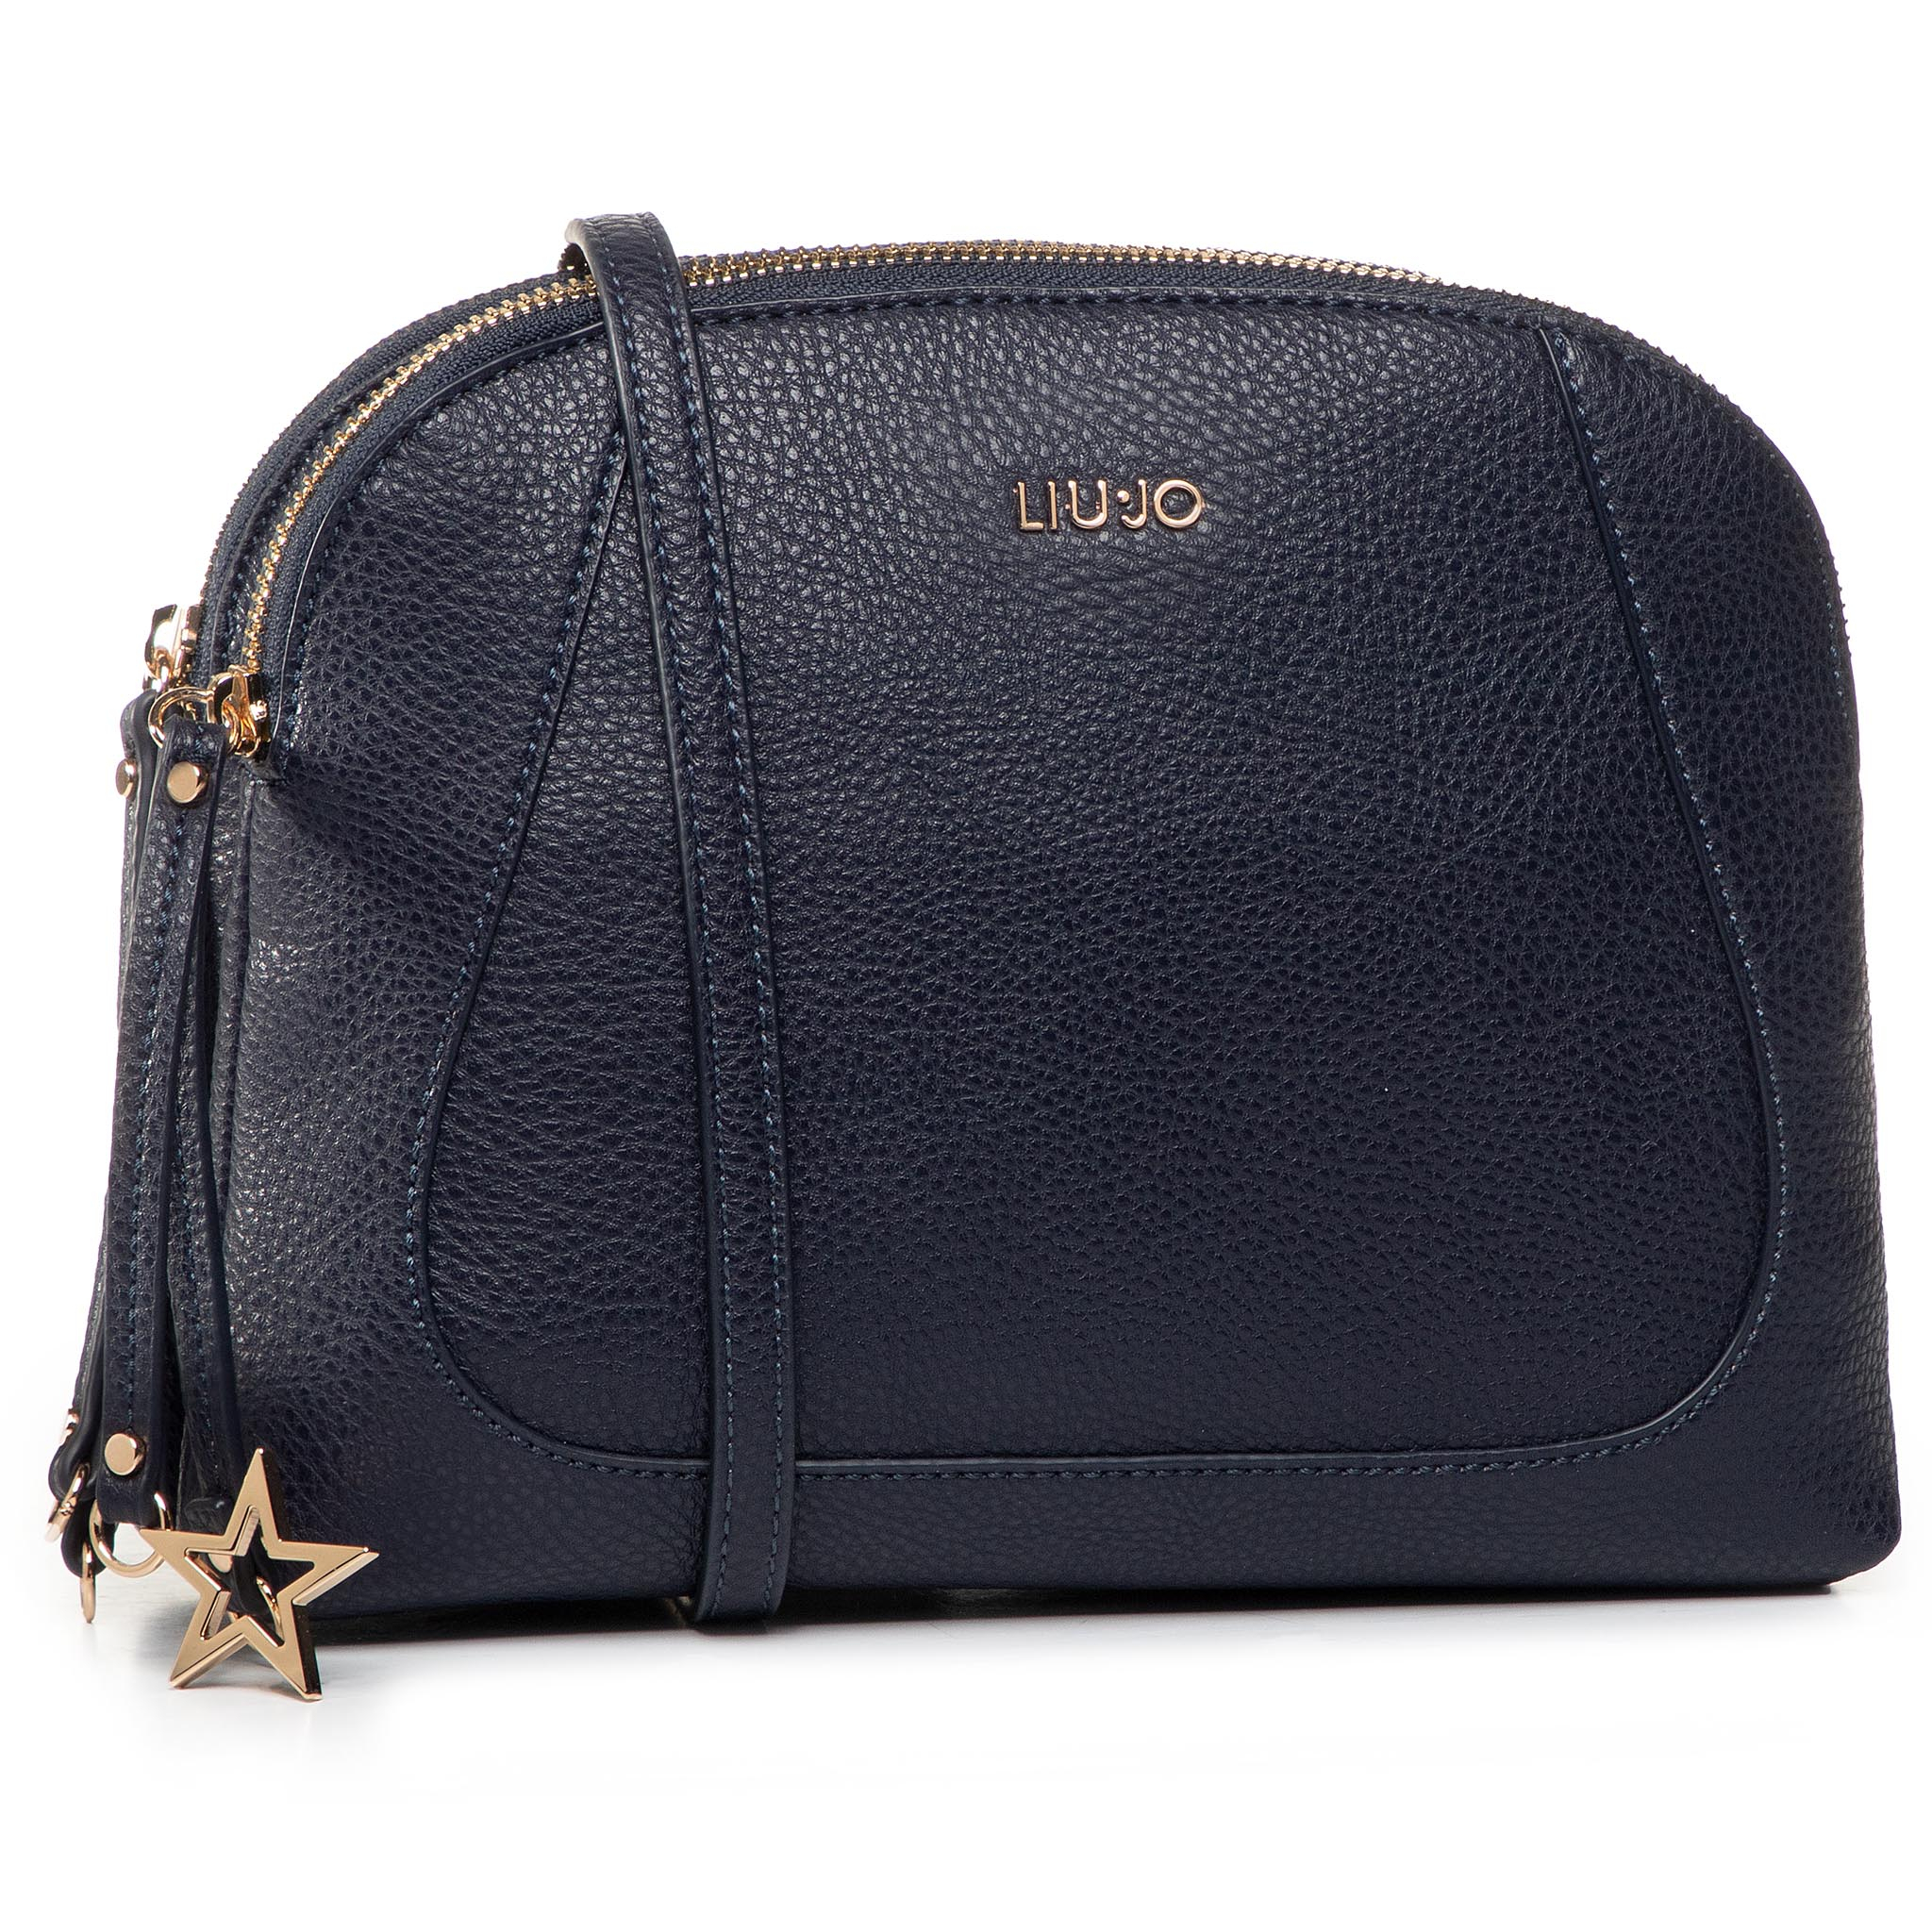 Geantă LIU JO - Xs Crossbody NA0134 E0031 Midnight 90013